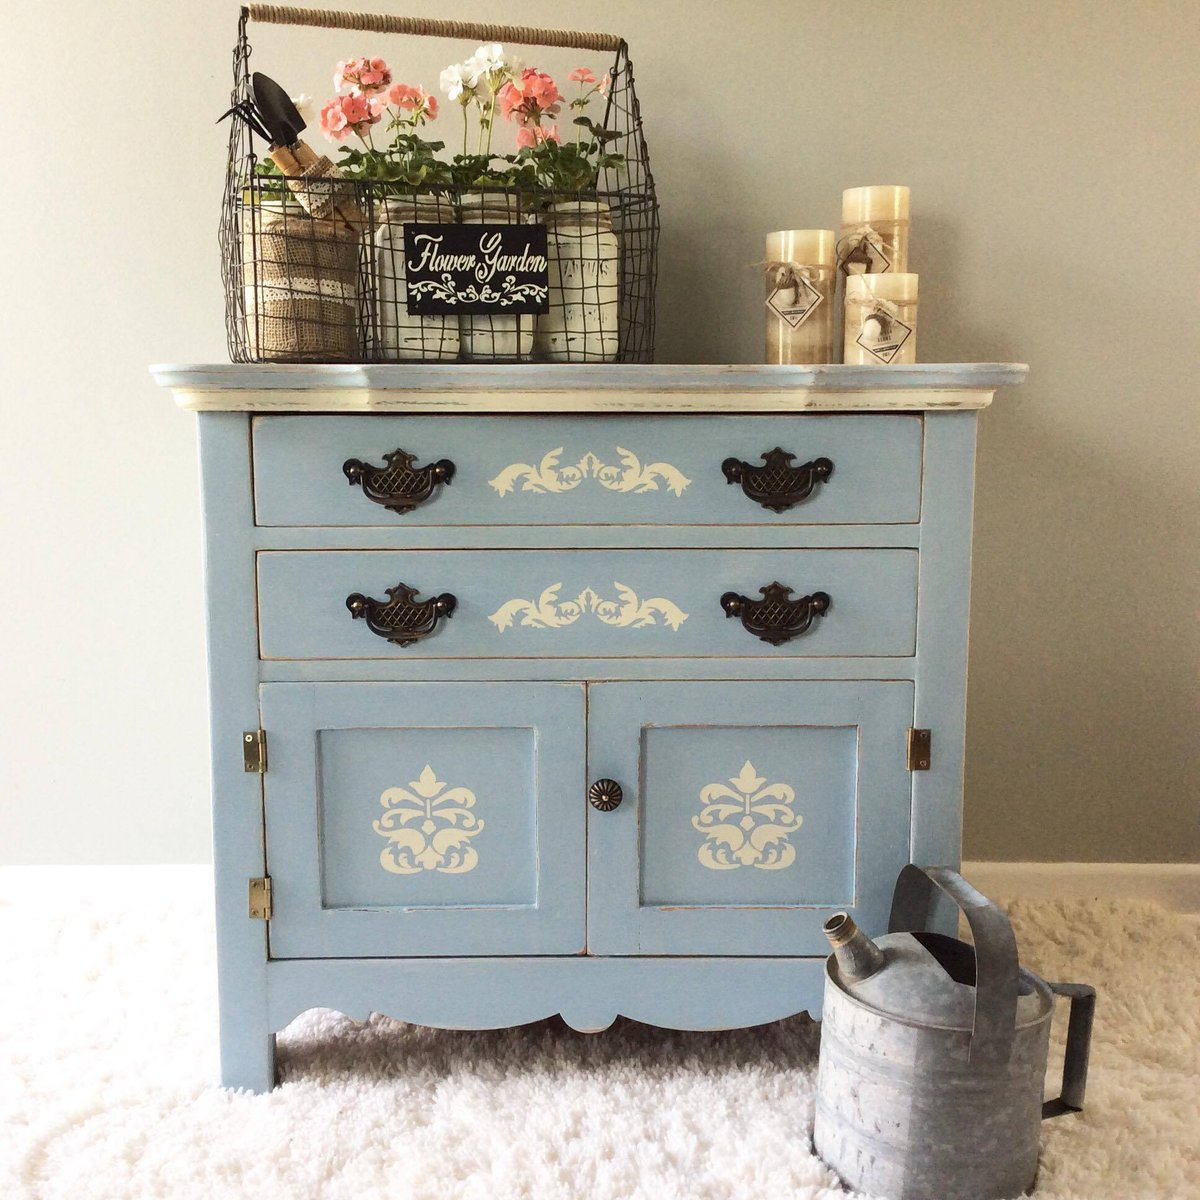 perfect summer addition #chalkpaint #refurbished <br>http://pic.twitter.com/6jzoVJPvDP